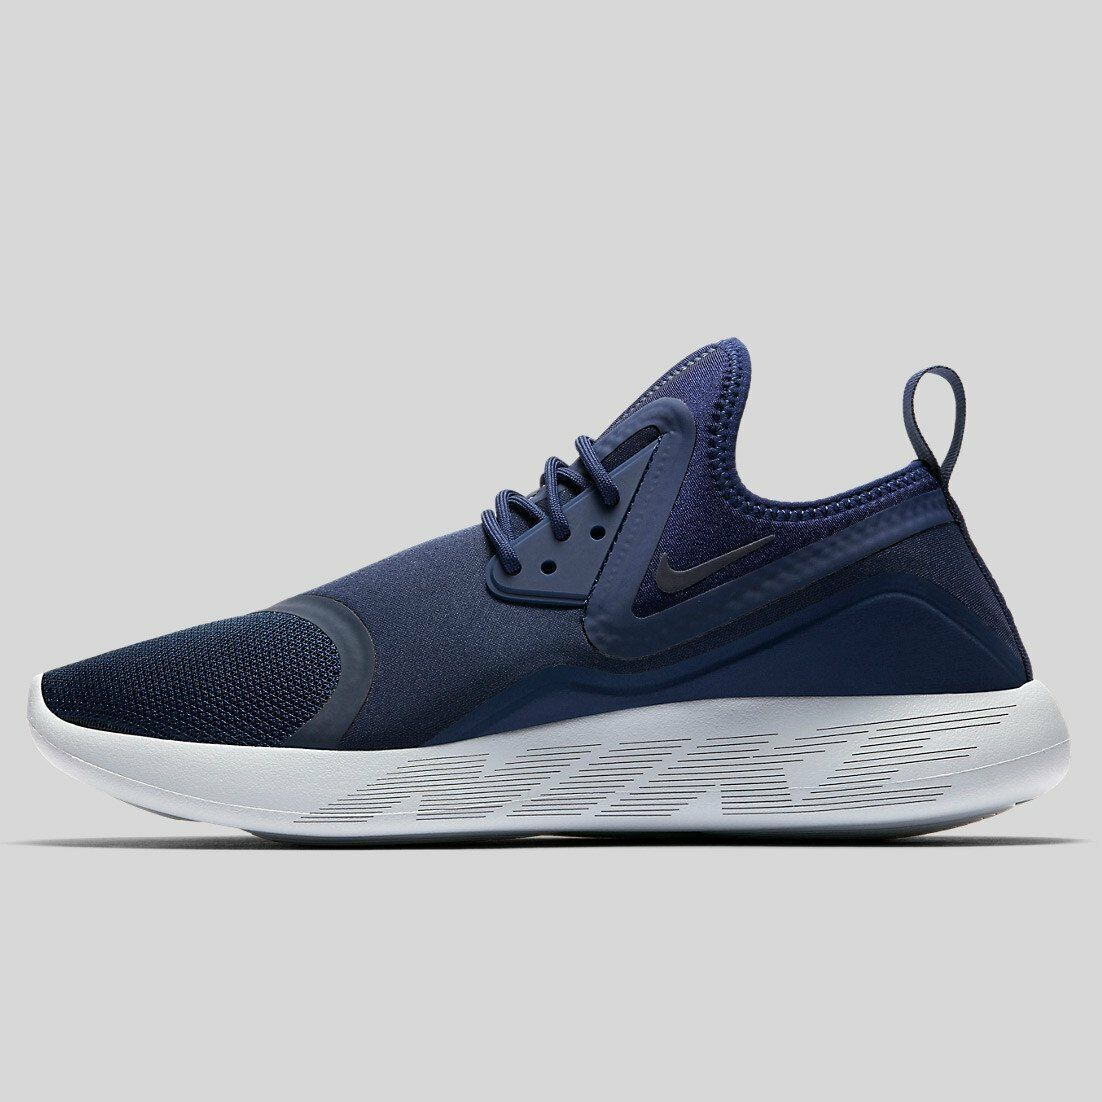 NEW Uomo NIKE LUNARCHARGE ESSENTIAL SNEAKERS 923619  401-SHOES-MULTIPLE SIZES